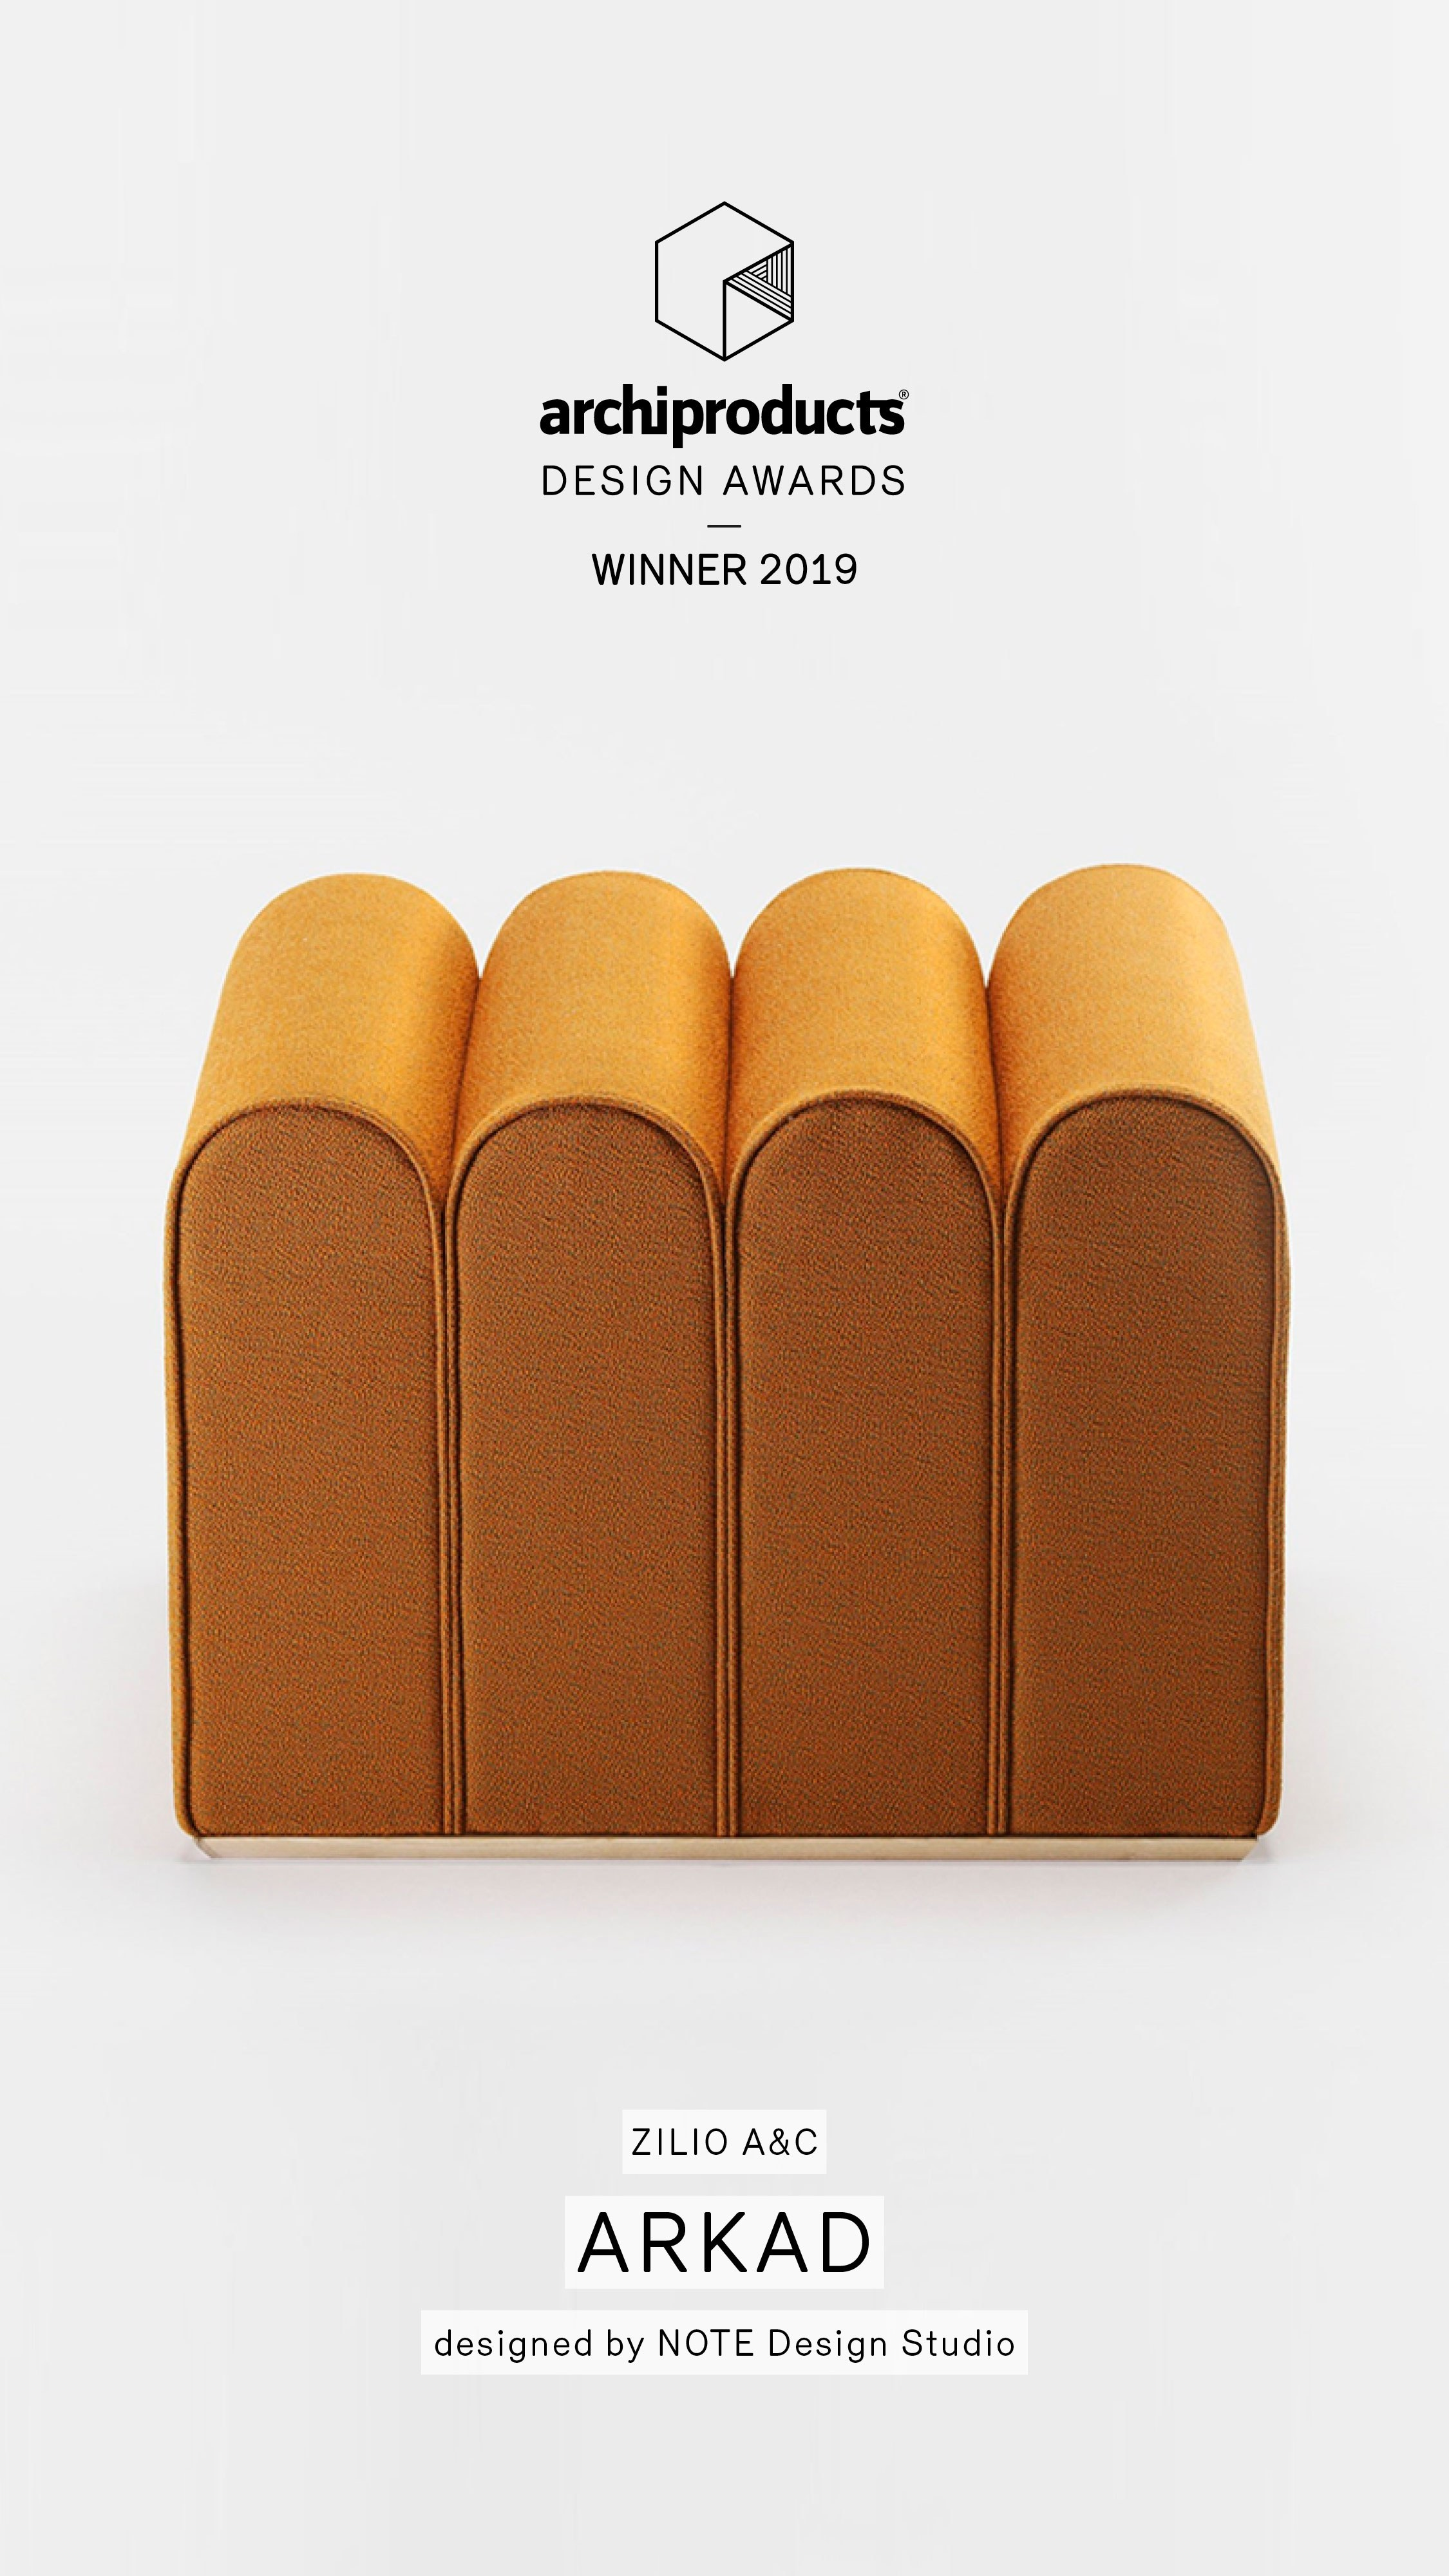 Arkad wins Archiproducts Design Awards